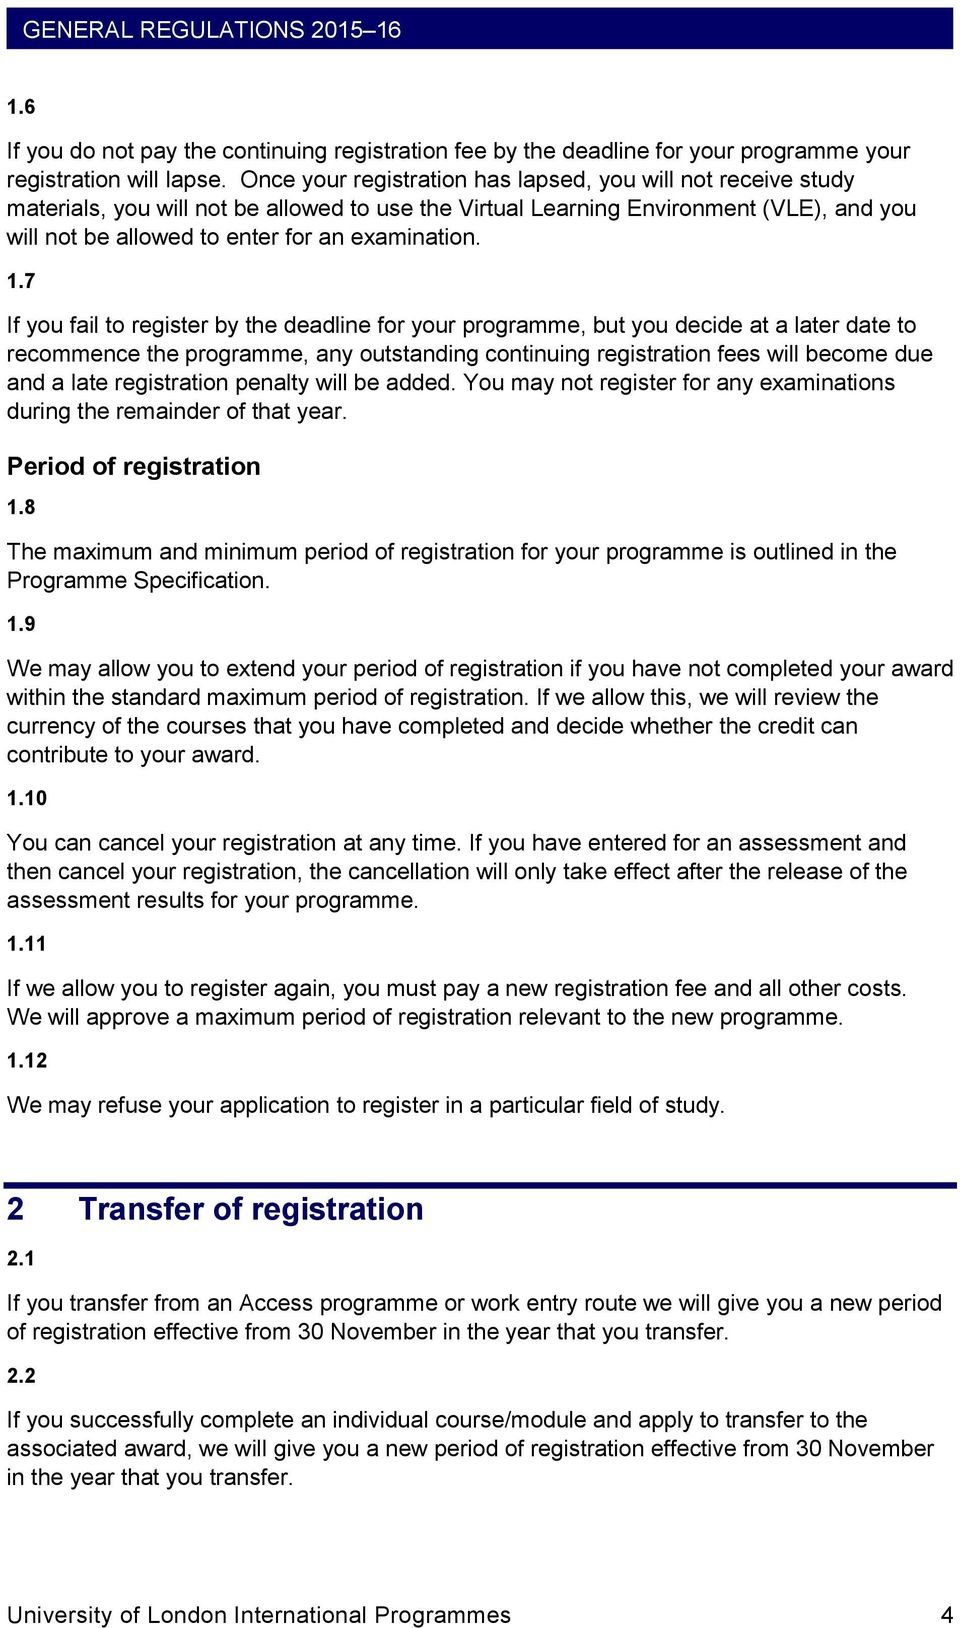 1.7 If you fail to register by the deadline for your programme, but you decide at a later date to recommence the programme, any outstanding continuing registration fees will become due and a late